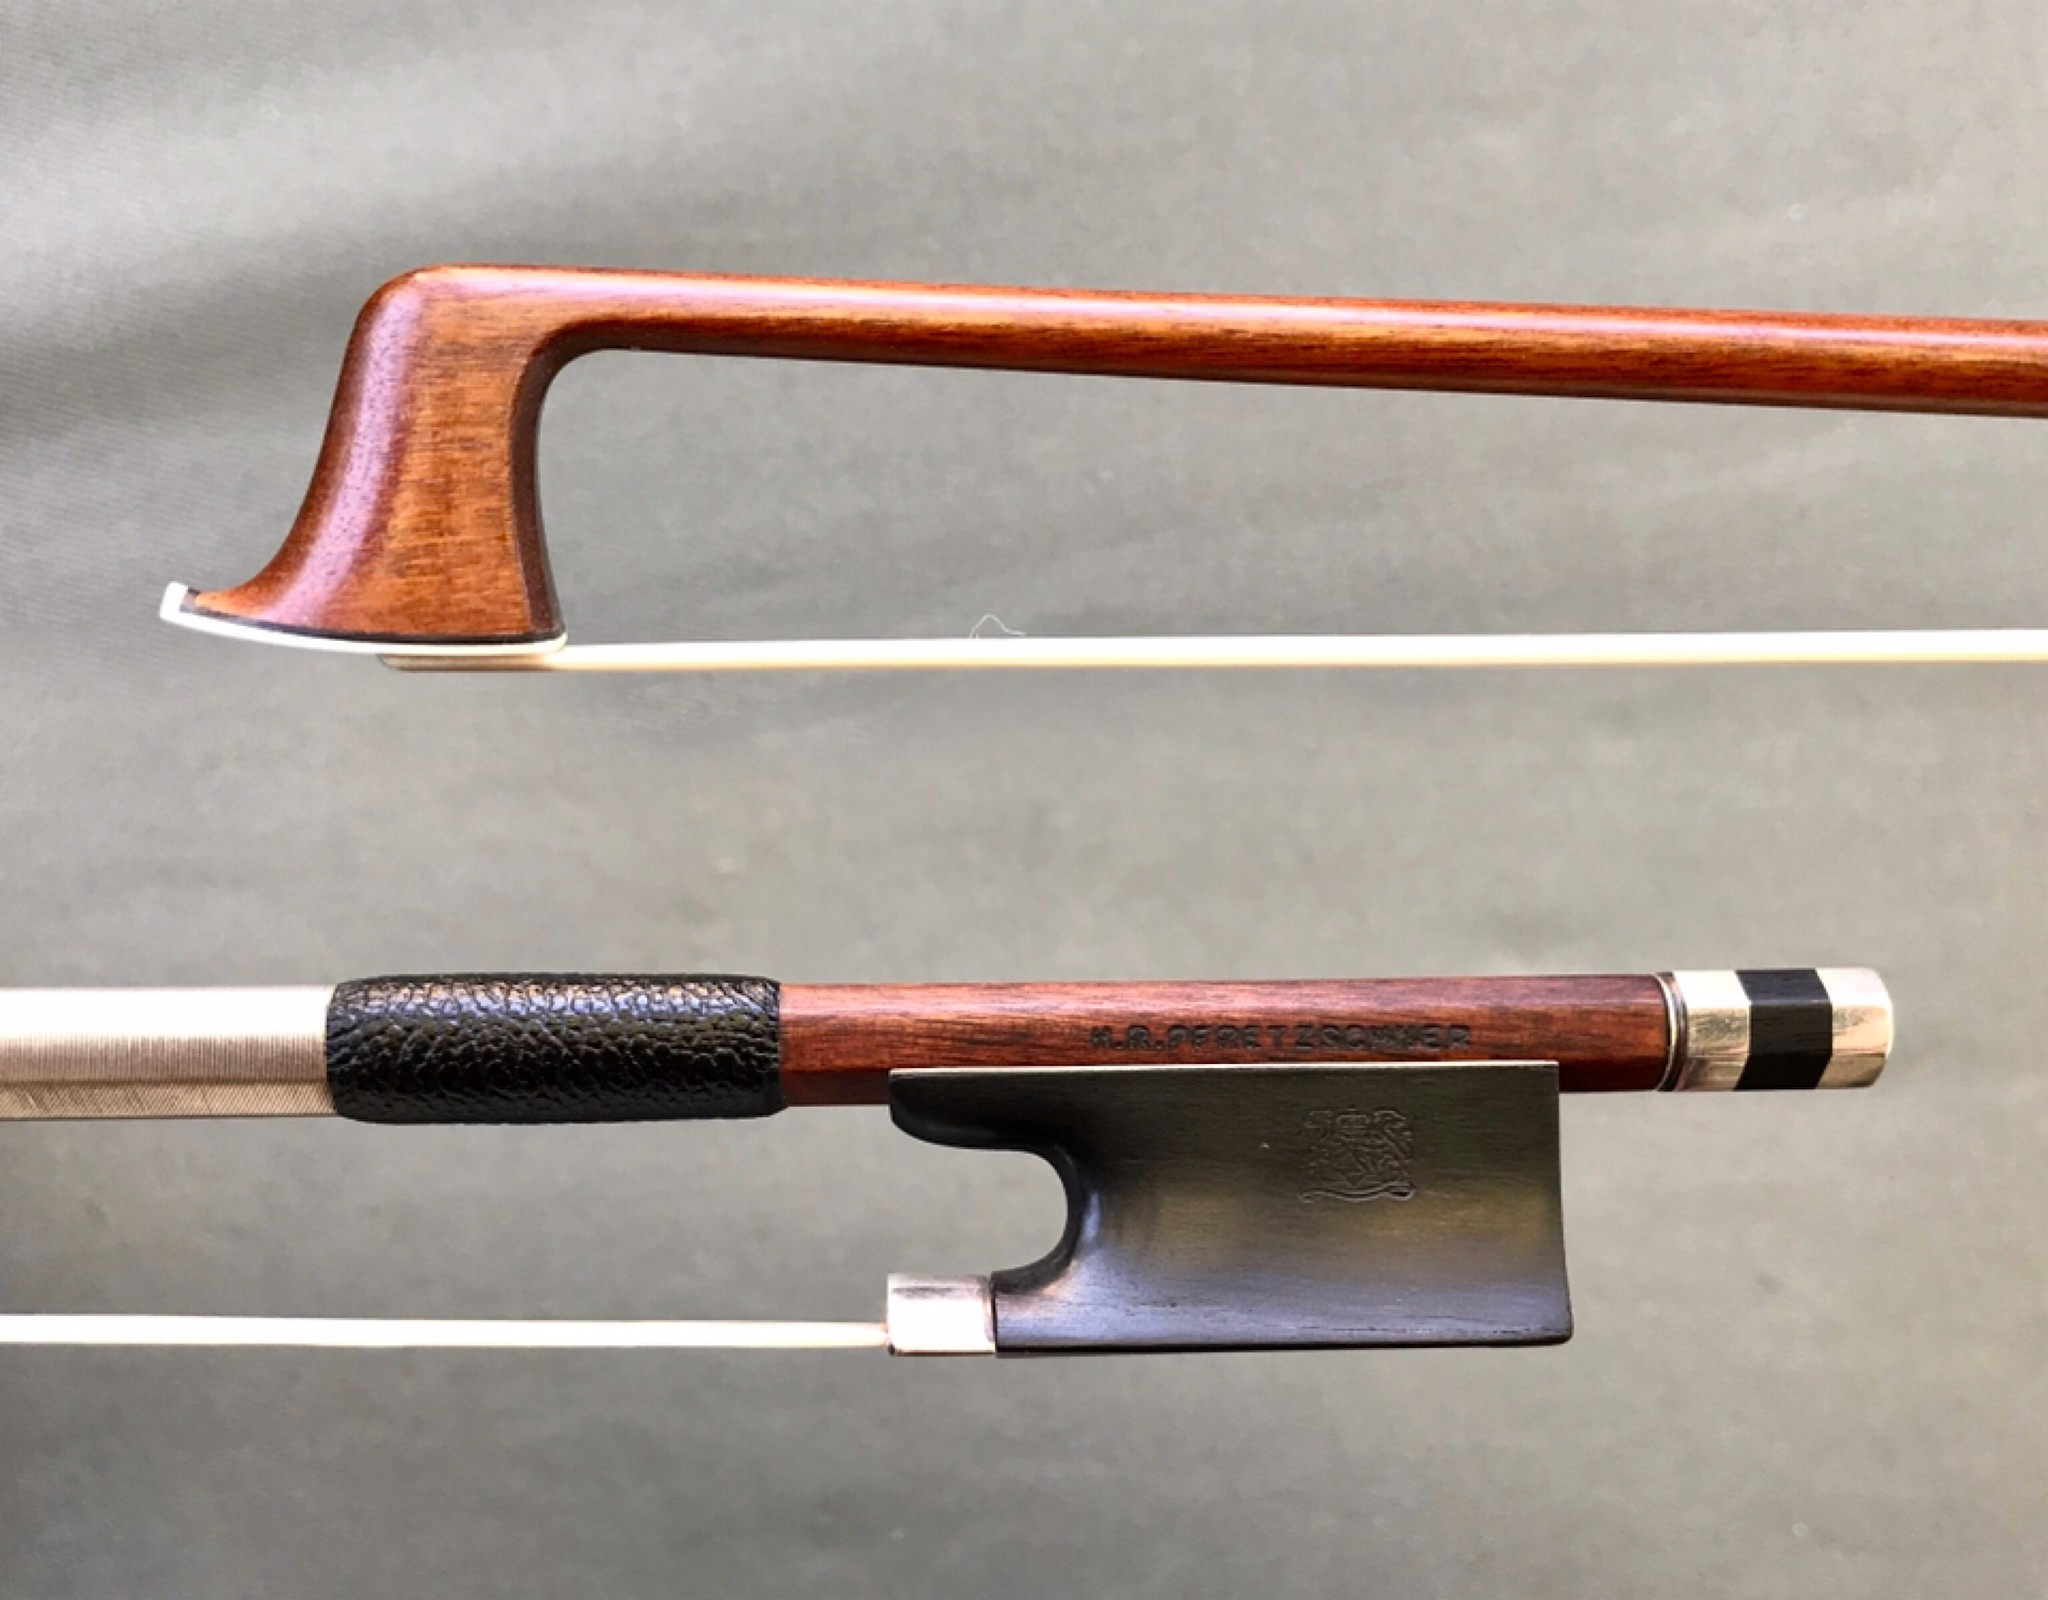 H.R. PFRETZSCHNER silver violin bow, ca 1900, with newer button, GERMANY